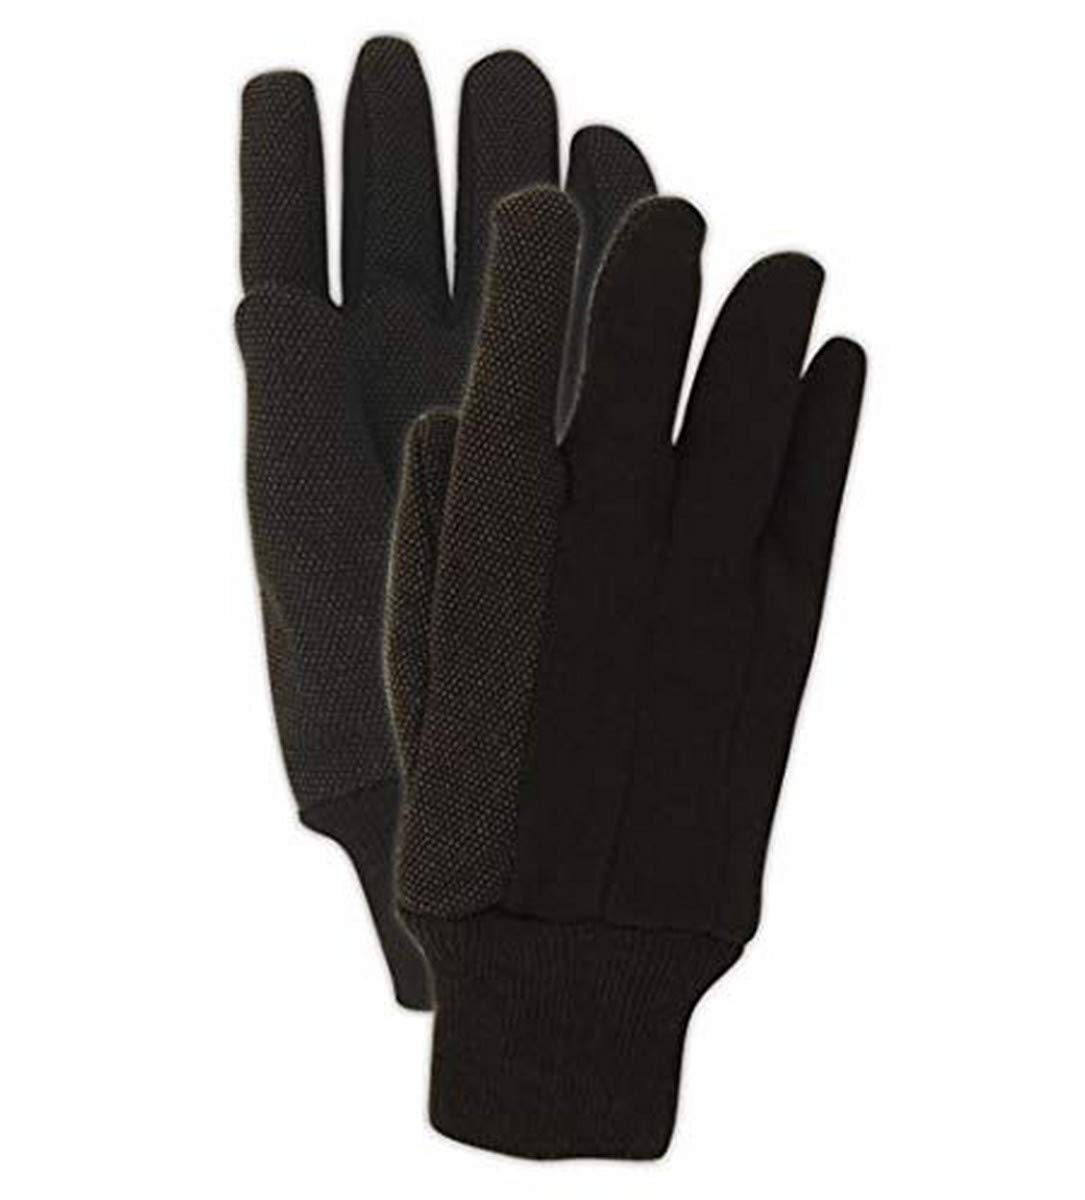 MAGID T92P MultiMaster Glove PVC Dark Gloves Dotted Over item handling ☆ Free Shipping Cheap Bargain Gift Jersey Br